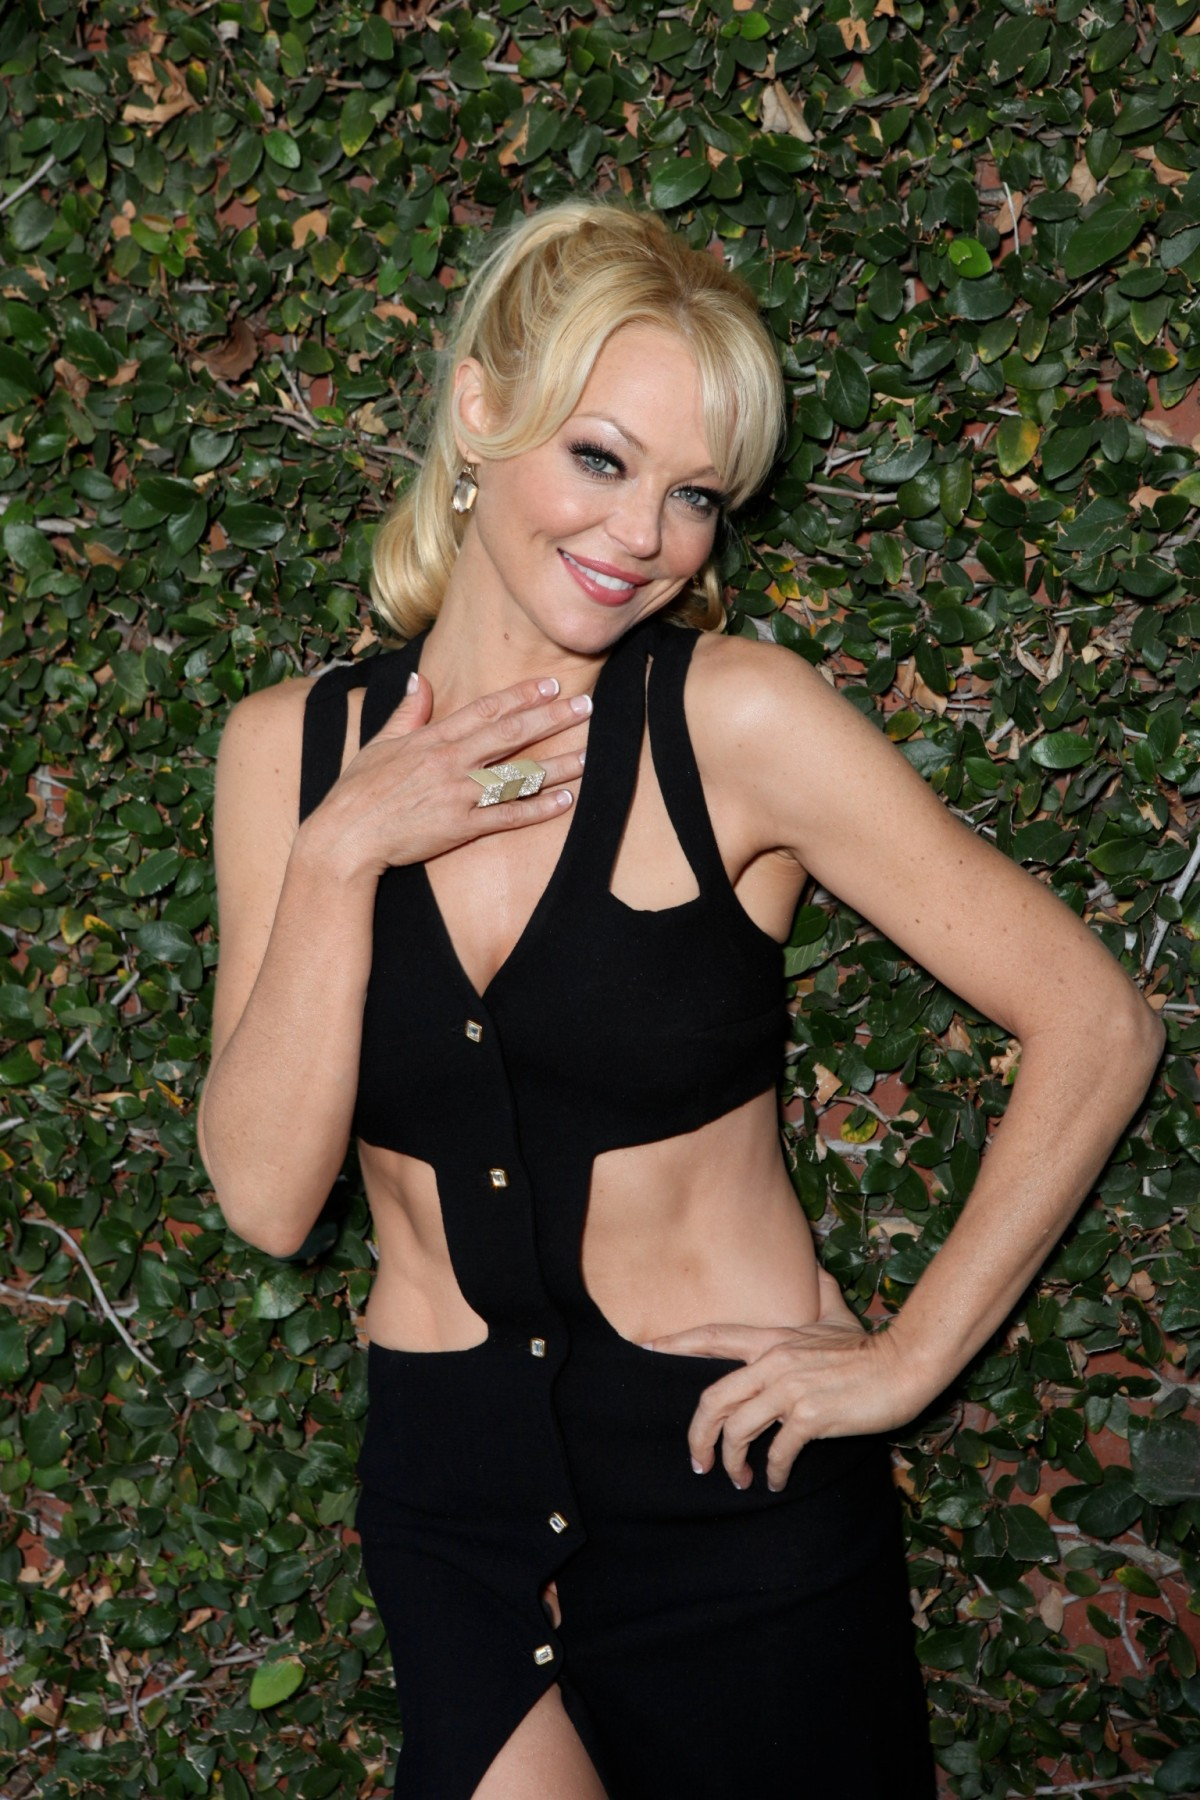 Charlotte ross drive angry 2011 - 1 2